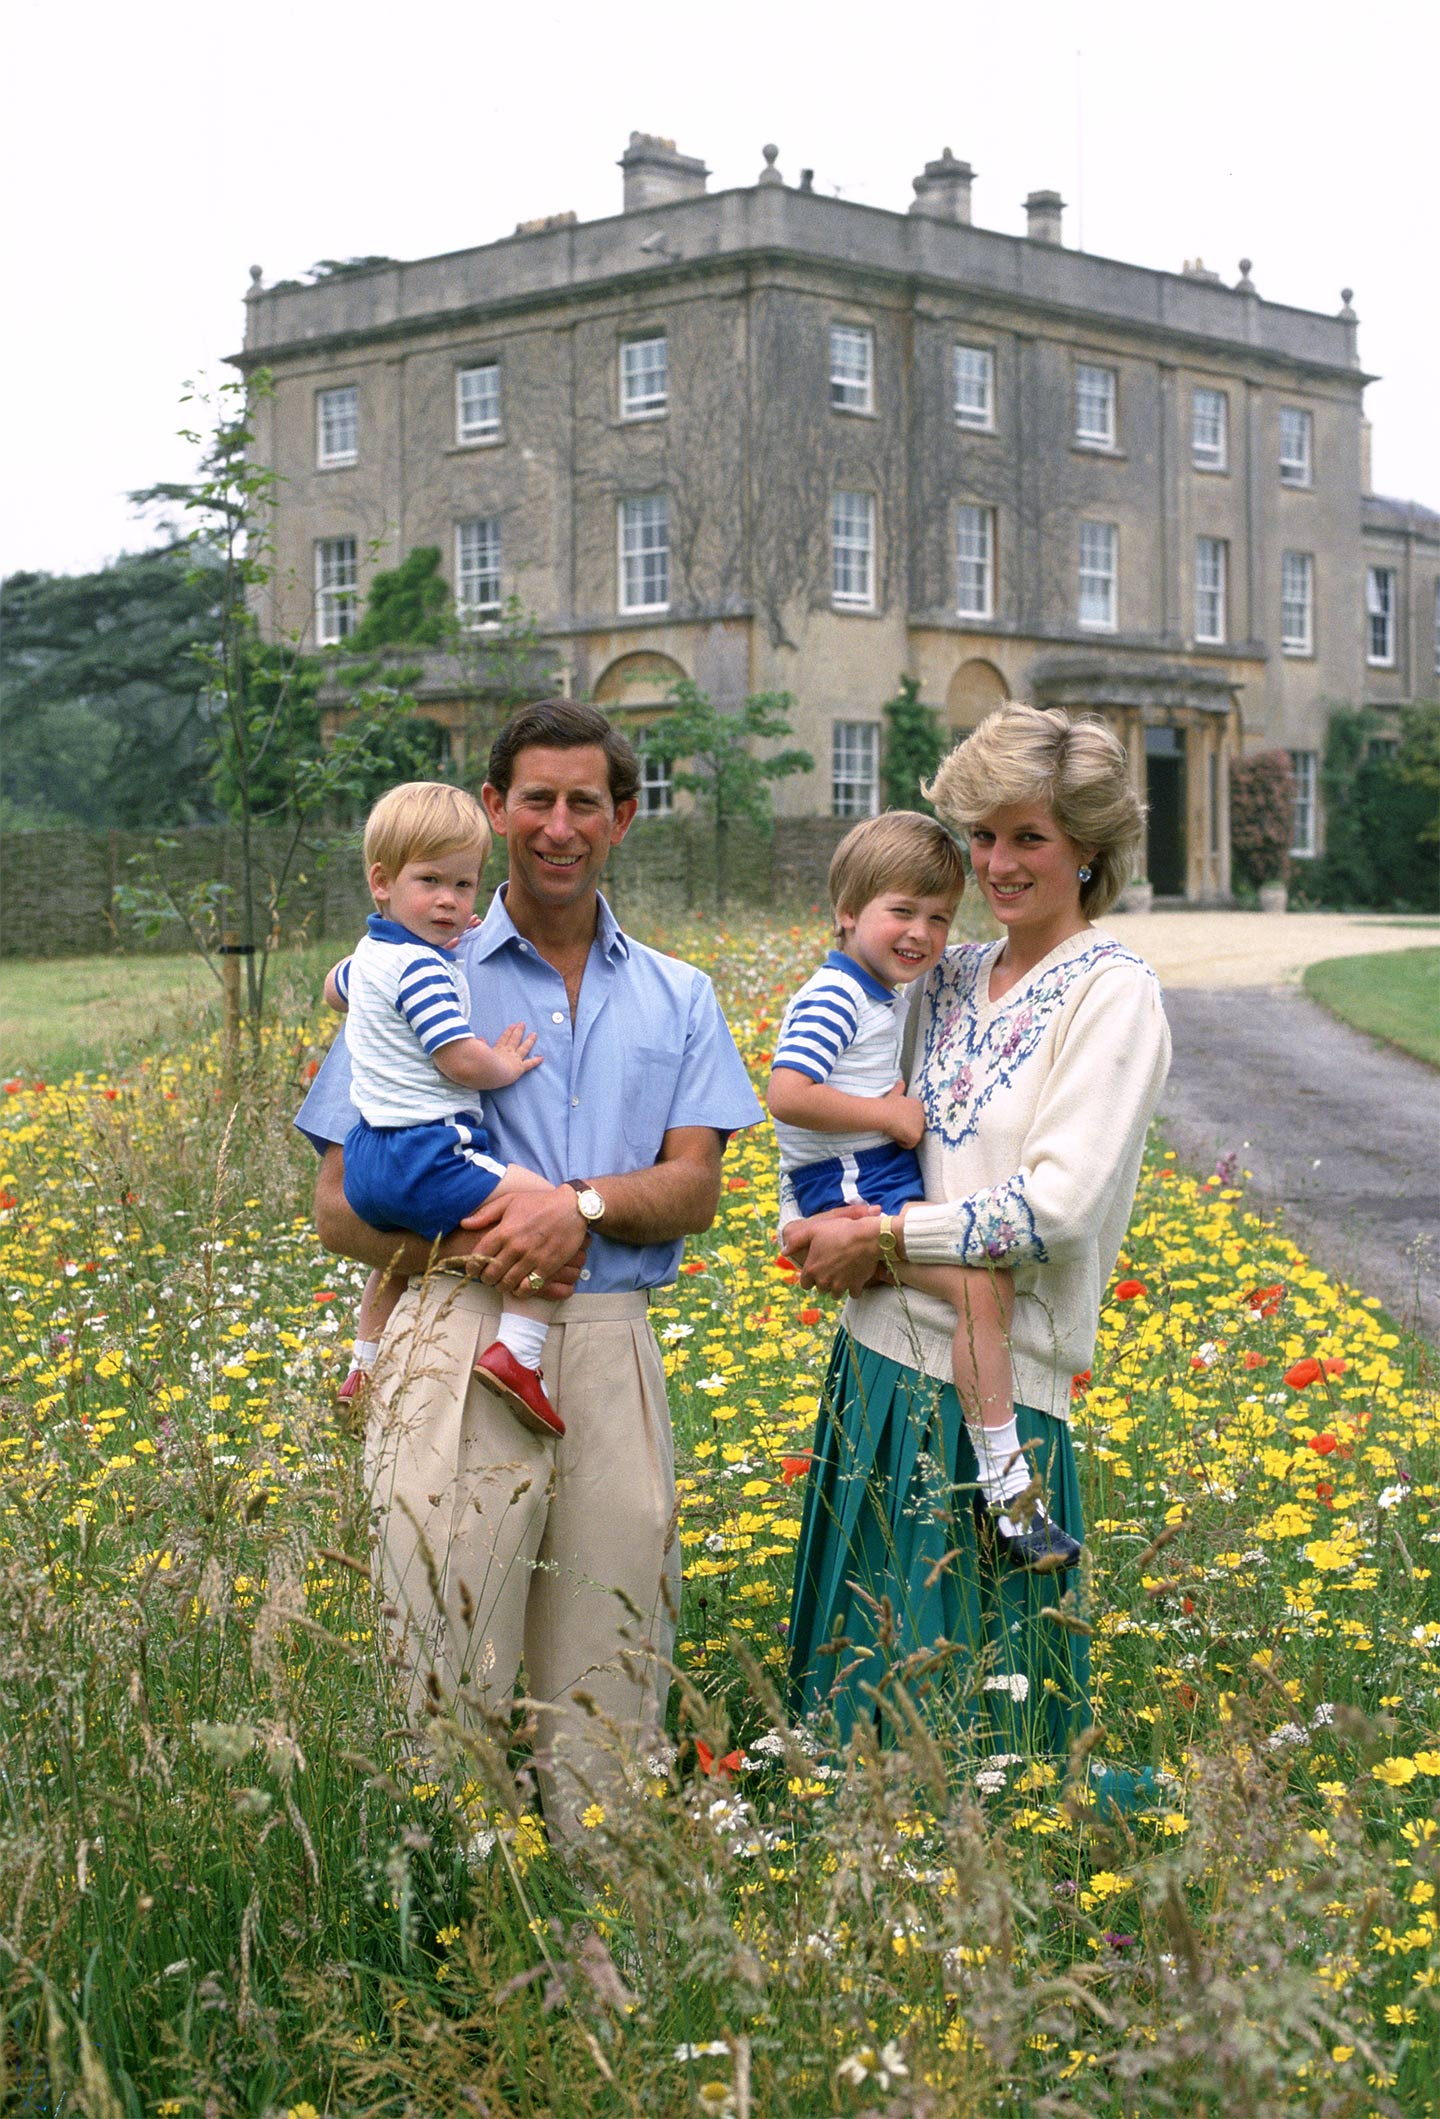 Prince Charles And Princess Diana With William Harry In The Wild Flower Meadow At Highgrove House Gloucestershire England On July 14